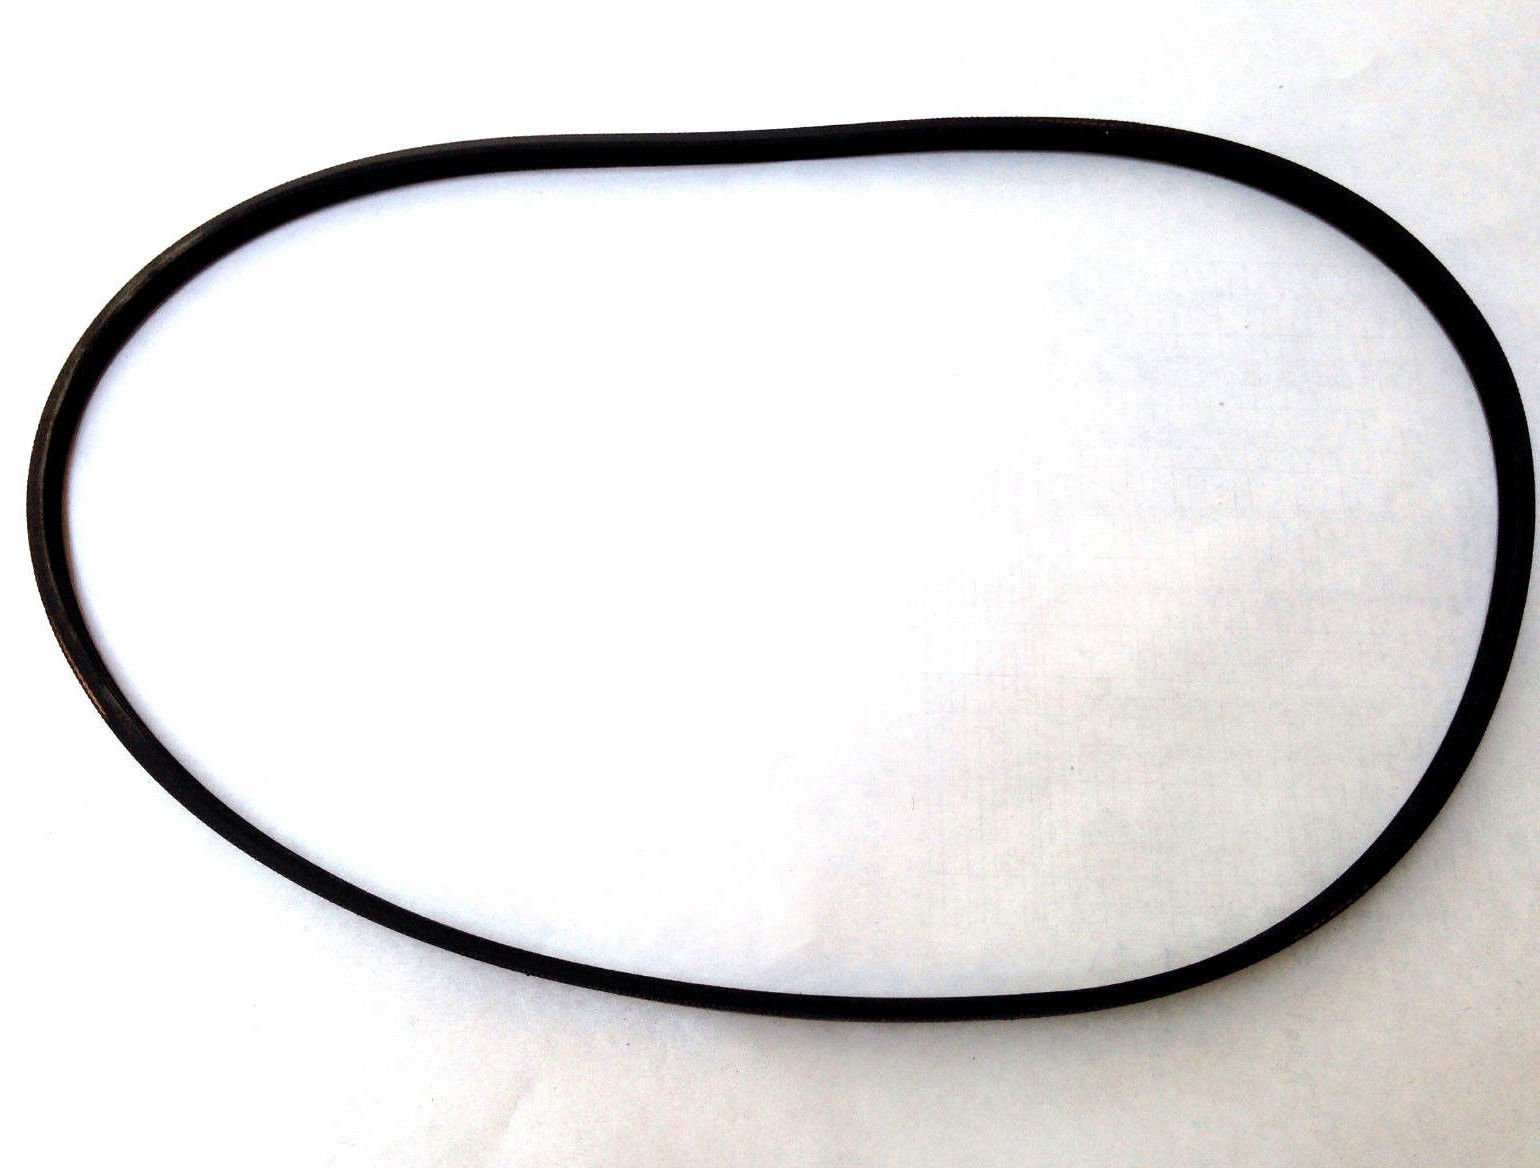 NEW After Market BELT for use with SUNBEAM OSTER Bread Machine Belt 4807 4810 4811 4812 4832 4833 4839 4843 5811 by Unknown